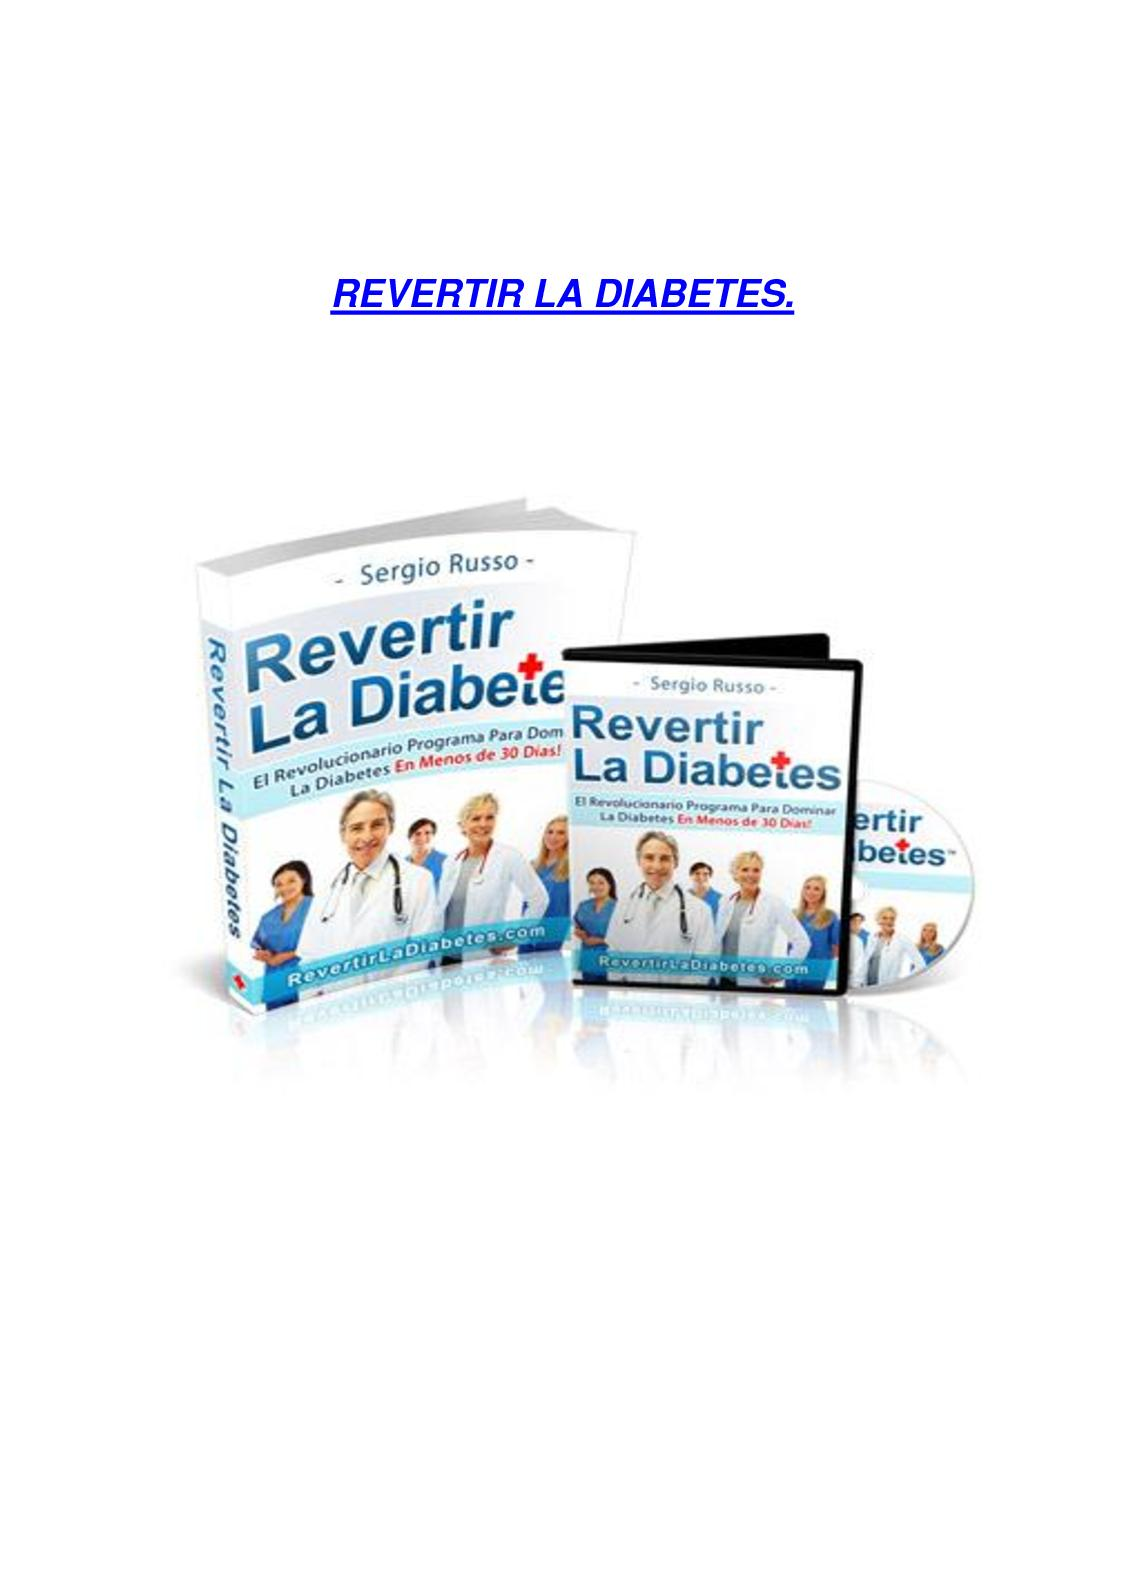 revertir la diabetes tipo 2 con jugo de vegetales